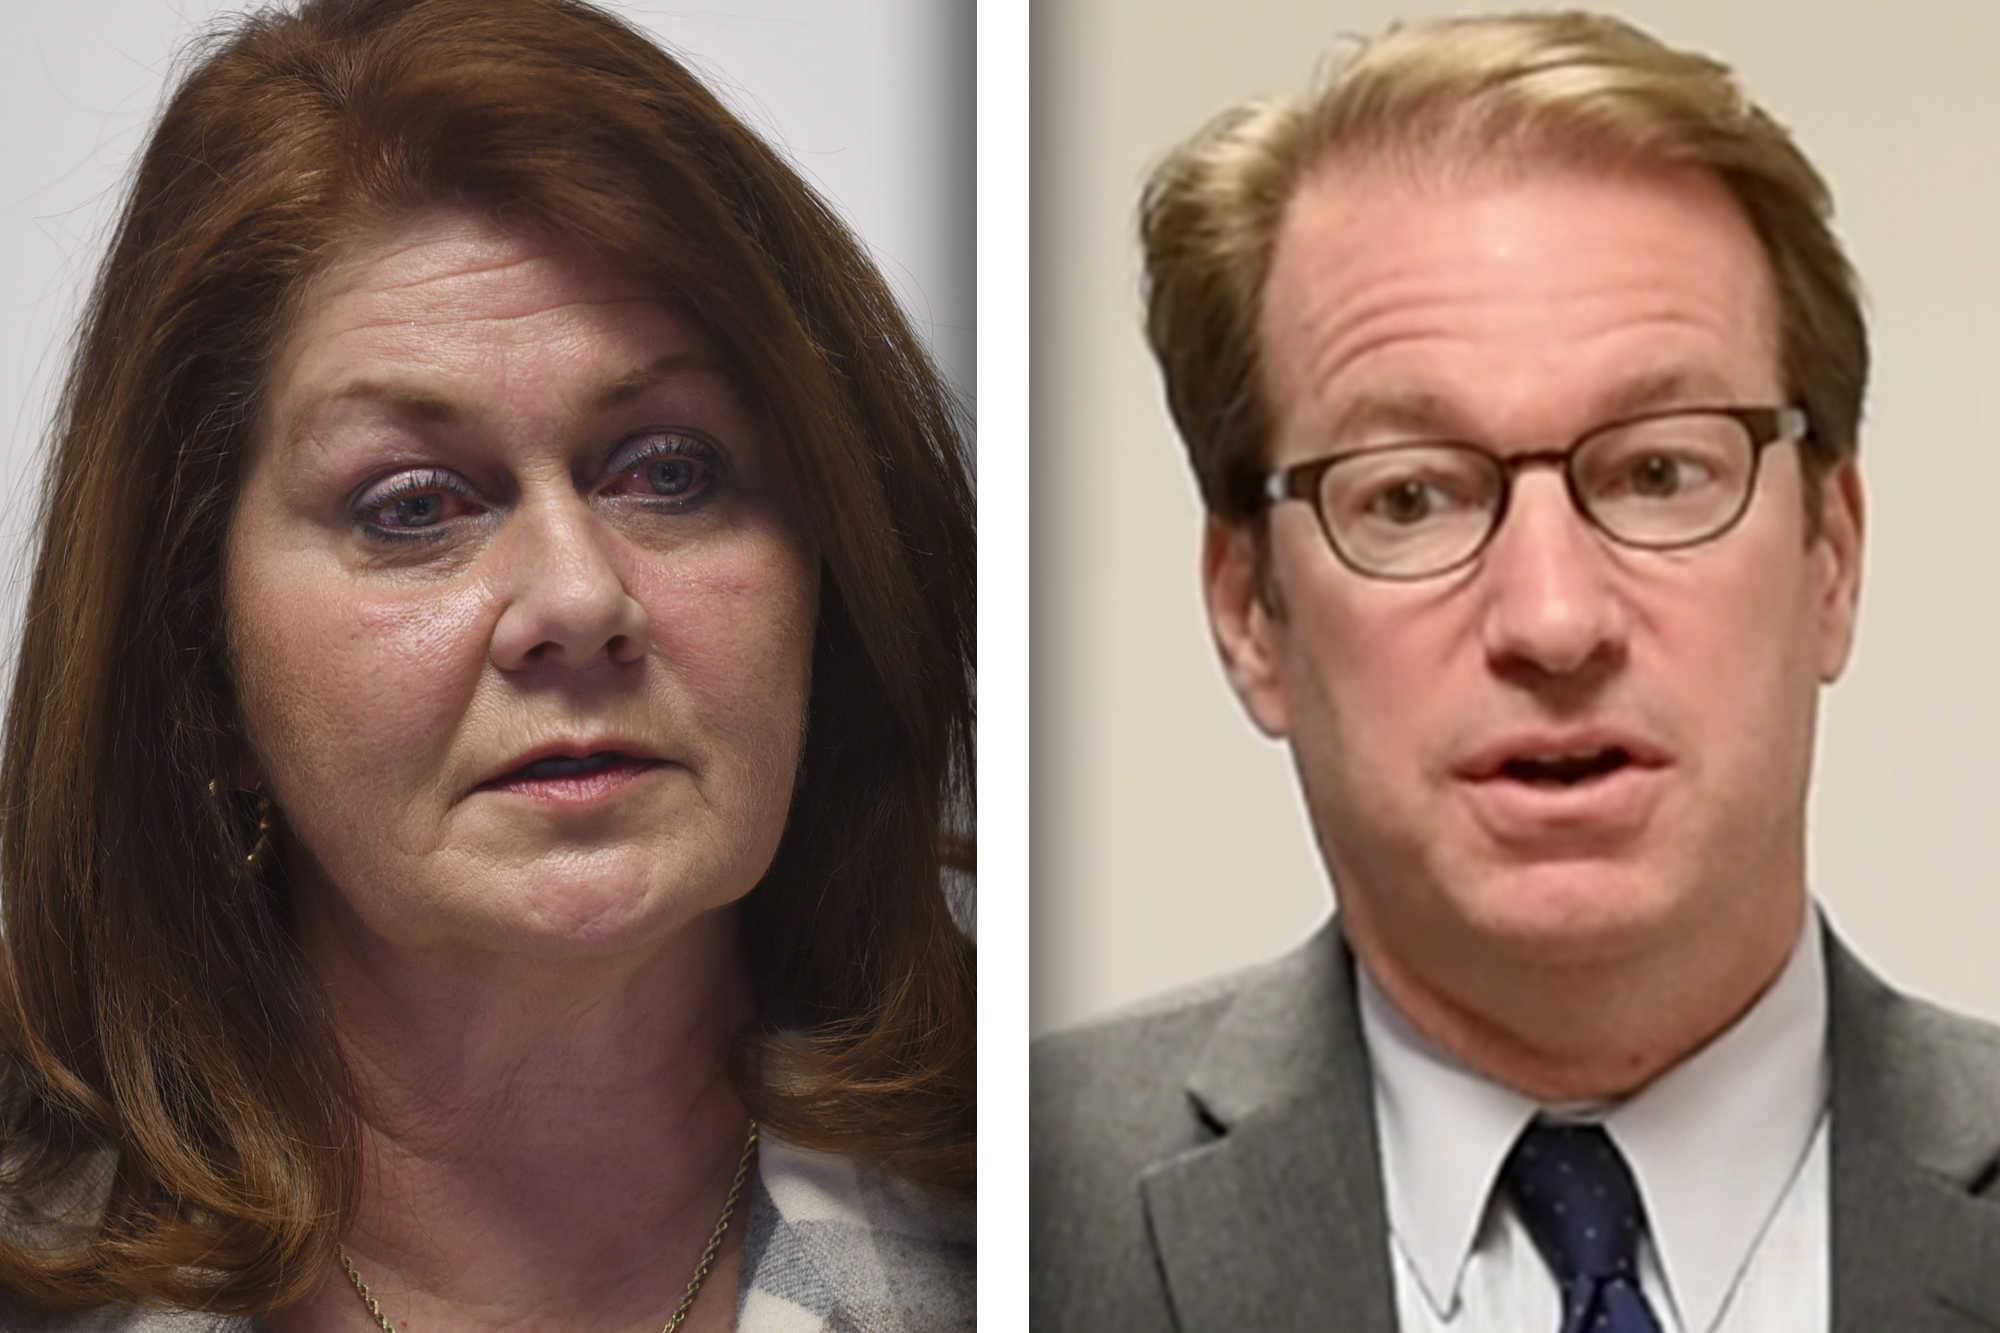 How Roskam, Howland differ on immigration reform